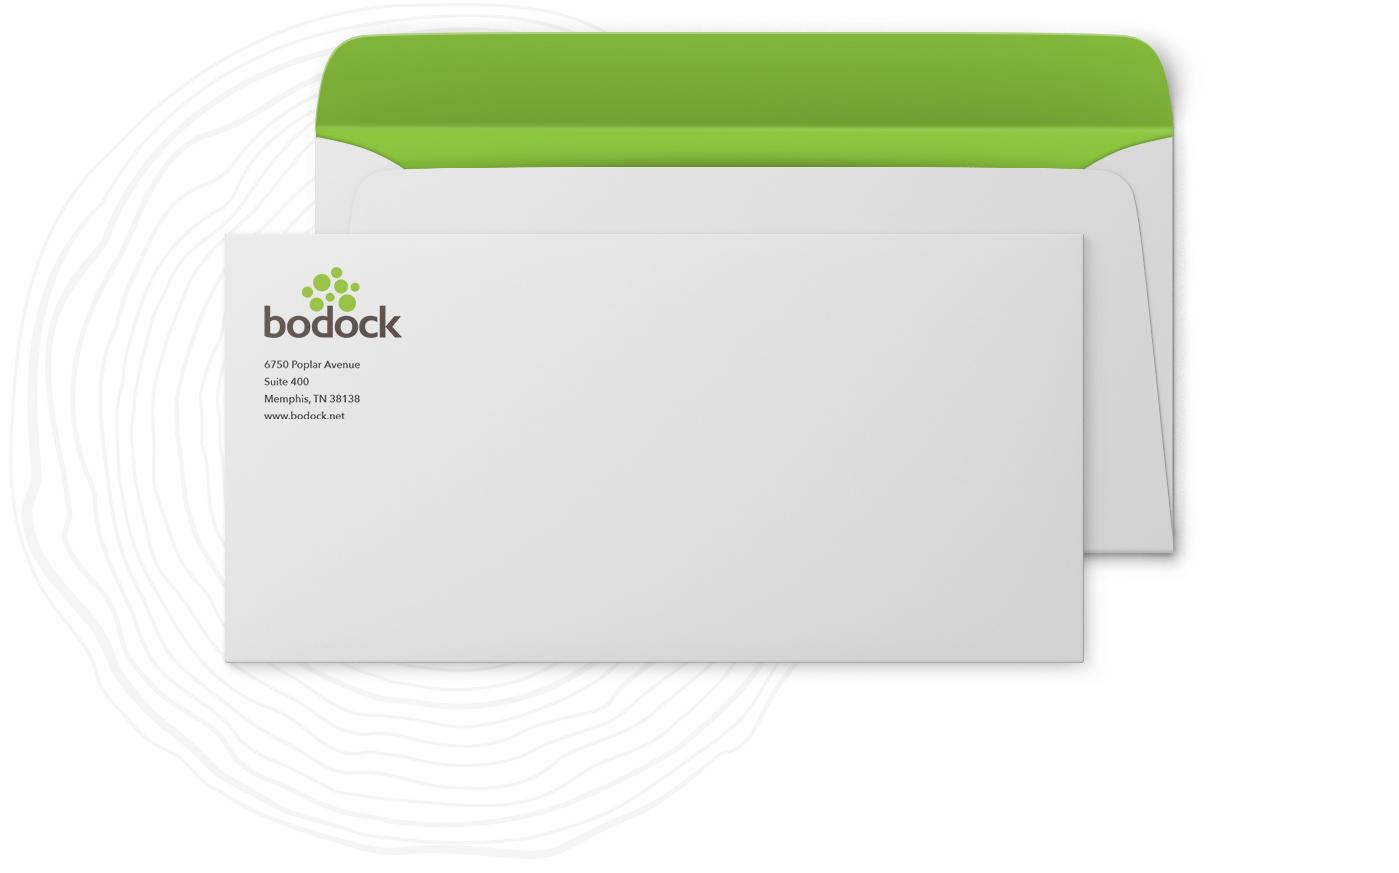 Bodock Envelopes